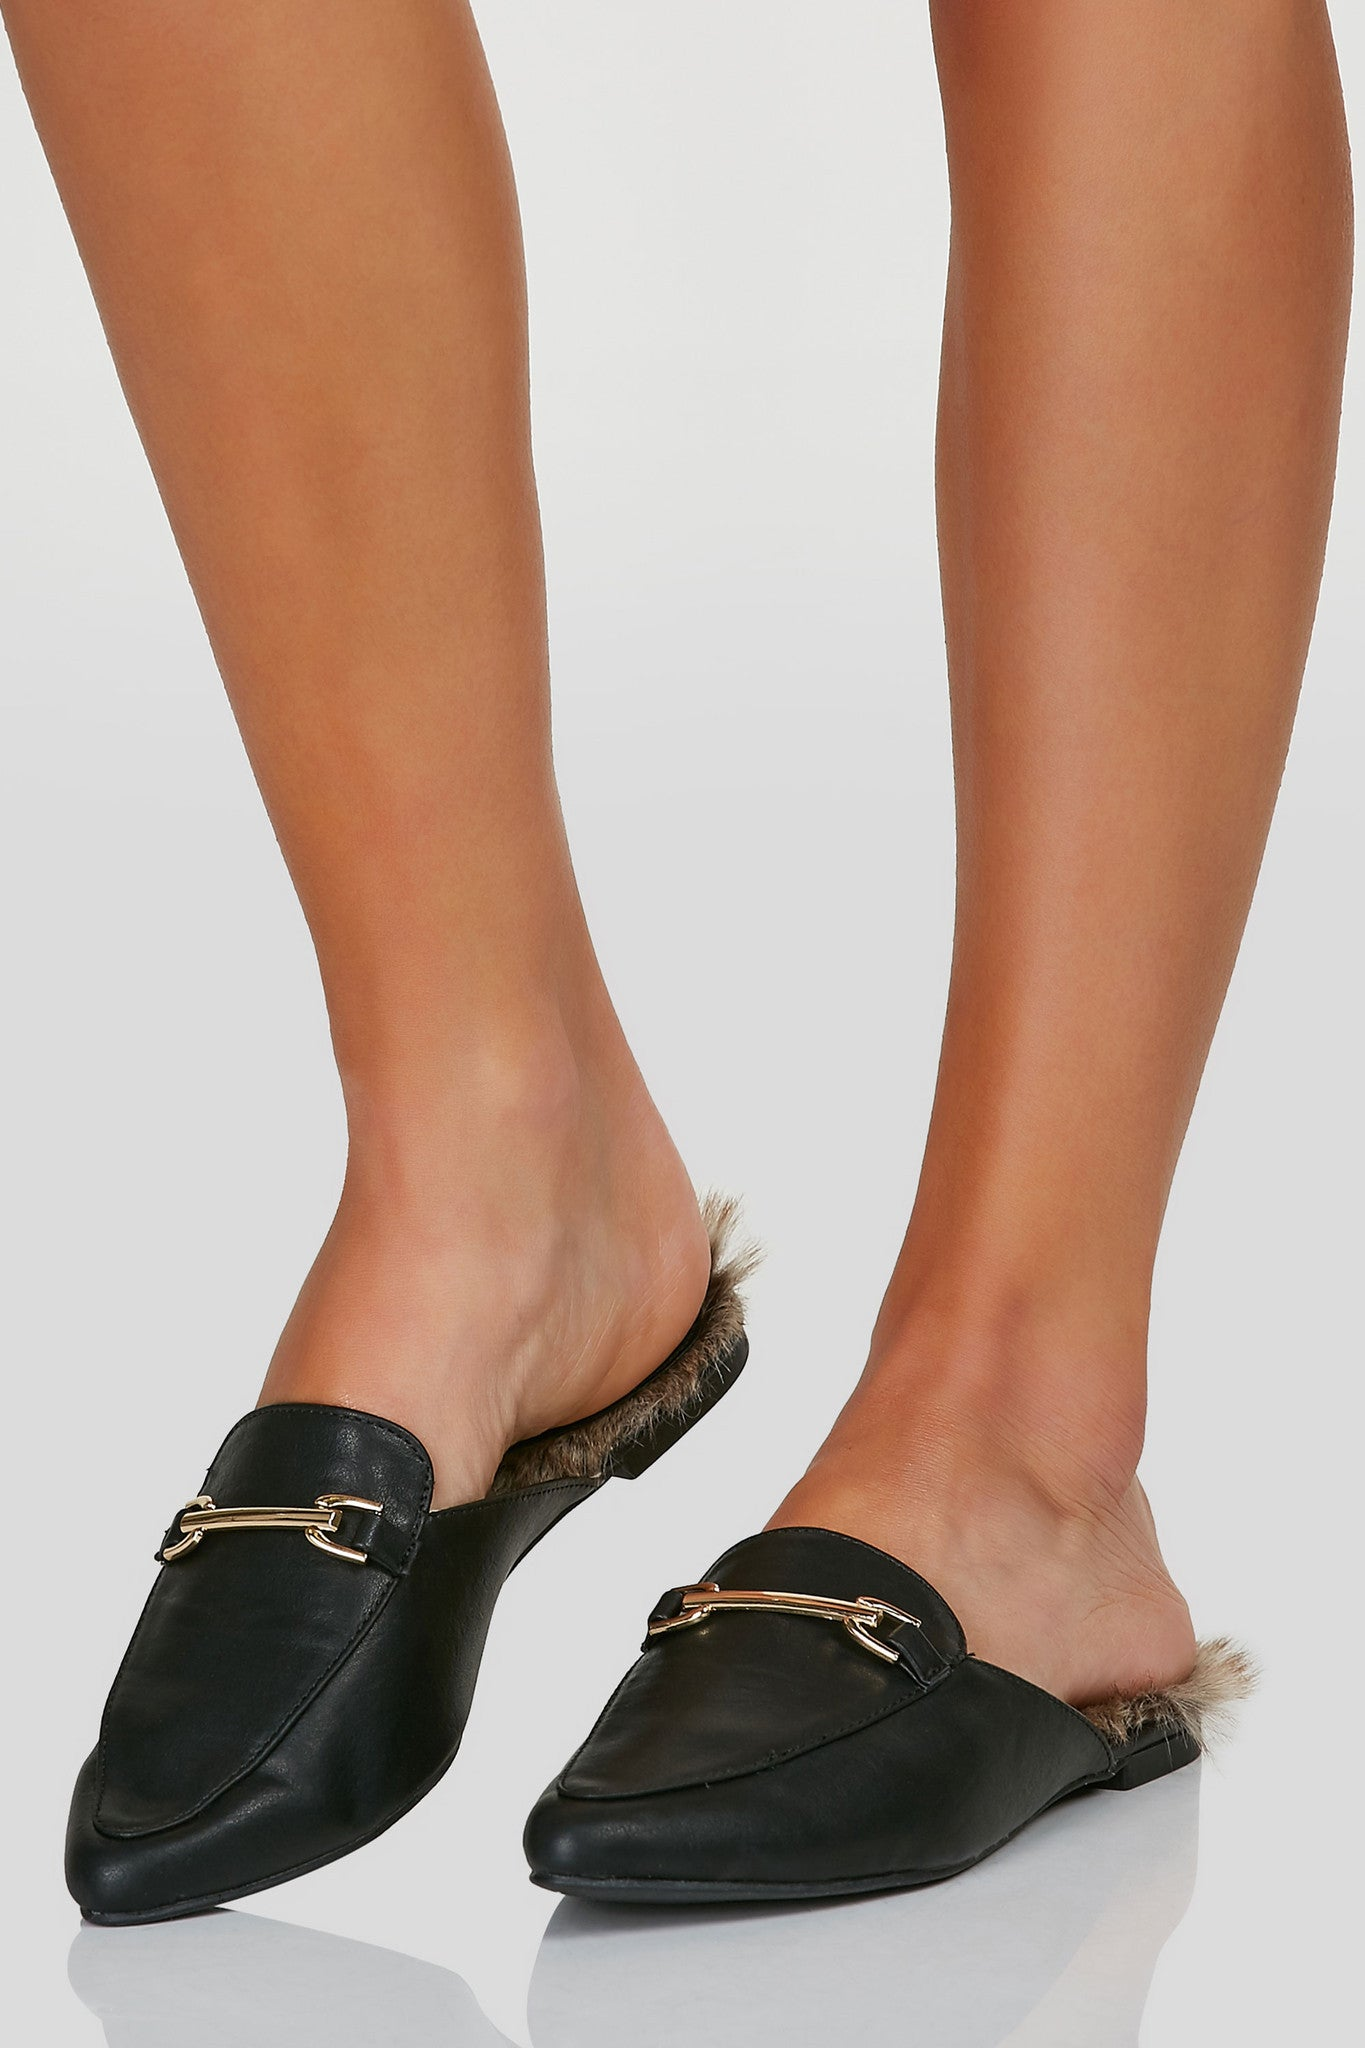 A chic pair of pointed toe loafers with gold hardware buckle detailing. Designer inspired faux fur lining.